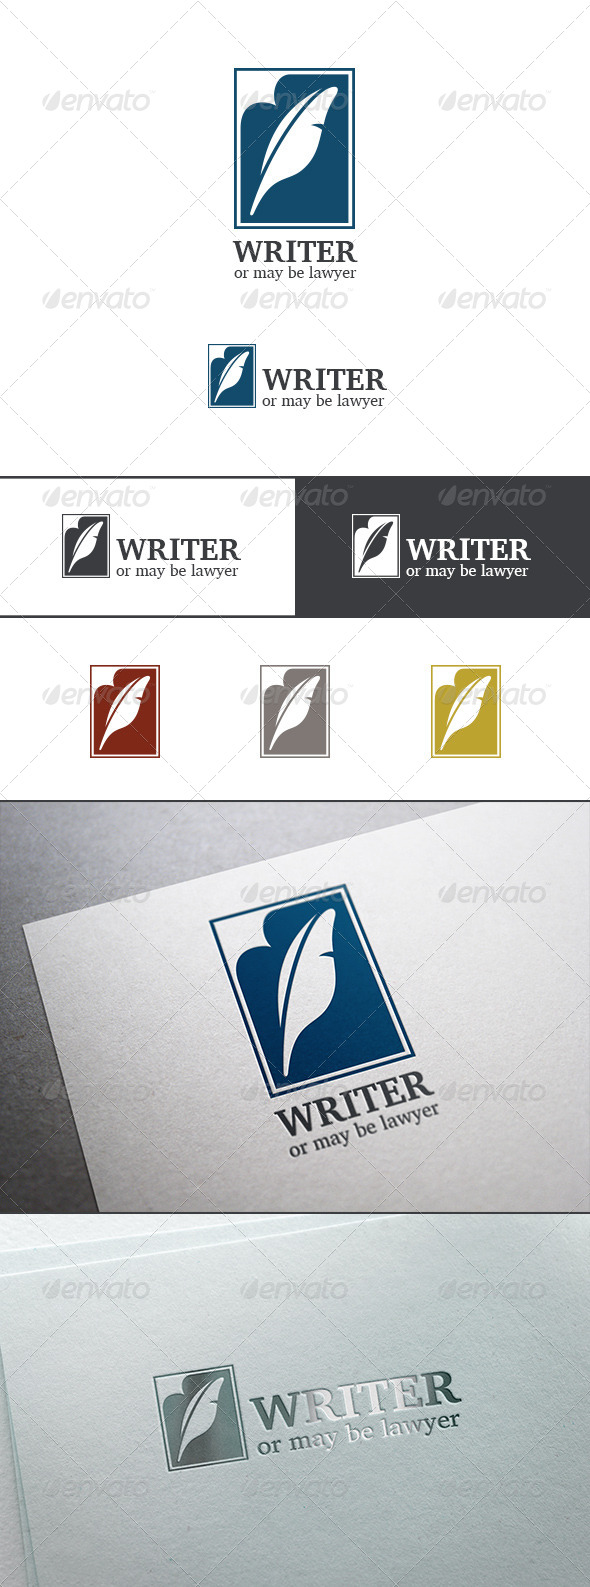 GraphicRiver Lawyer Writer Feather Silhouette Logo Abstract 8181942